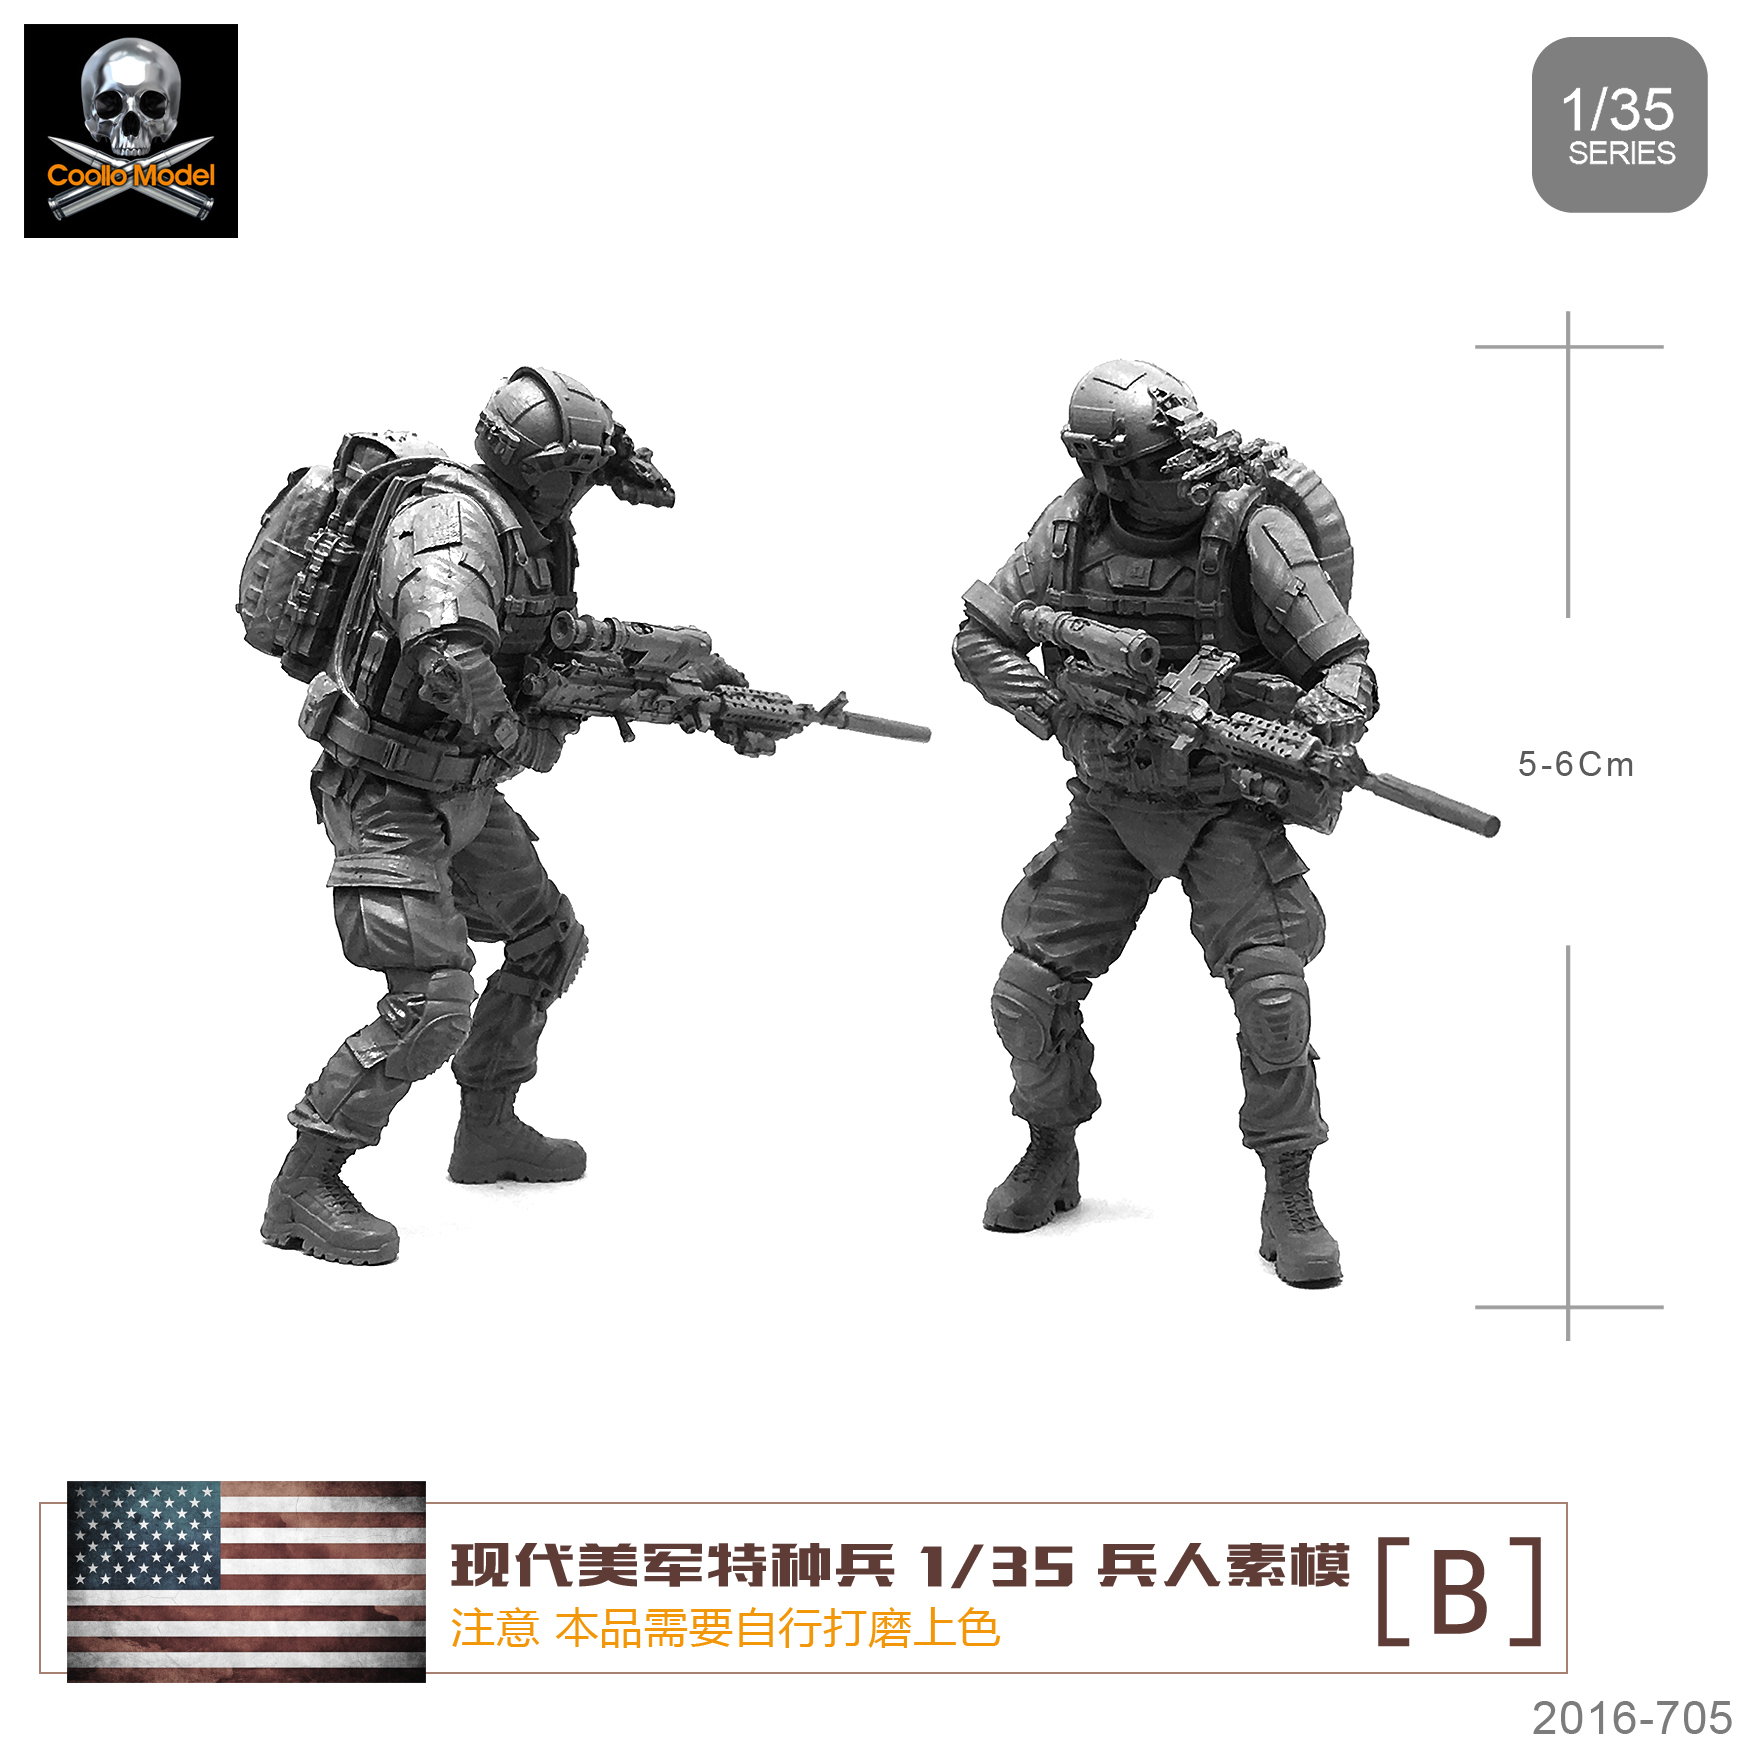 1/35 Resin Soldier Element For Modern U.s. Special Forces  Figure Kits Colorless And Self-assembled B110